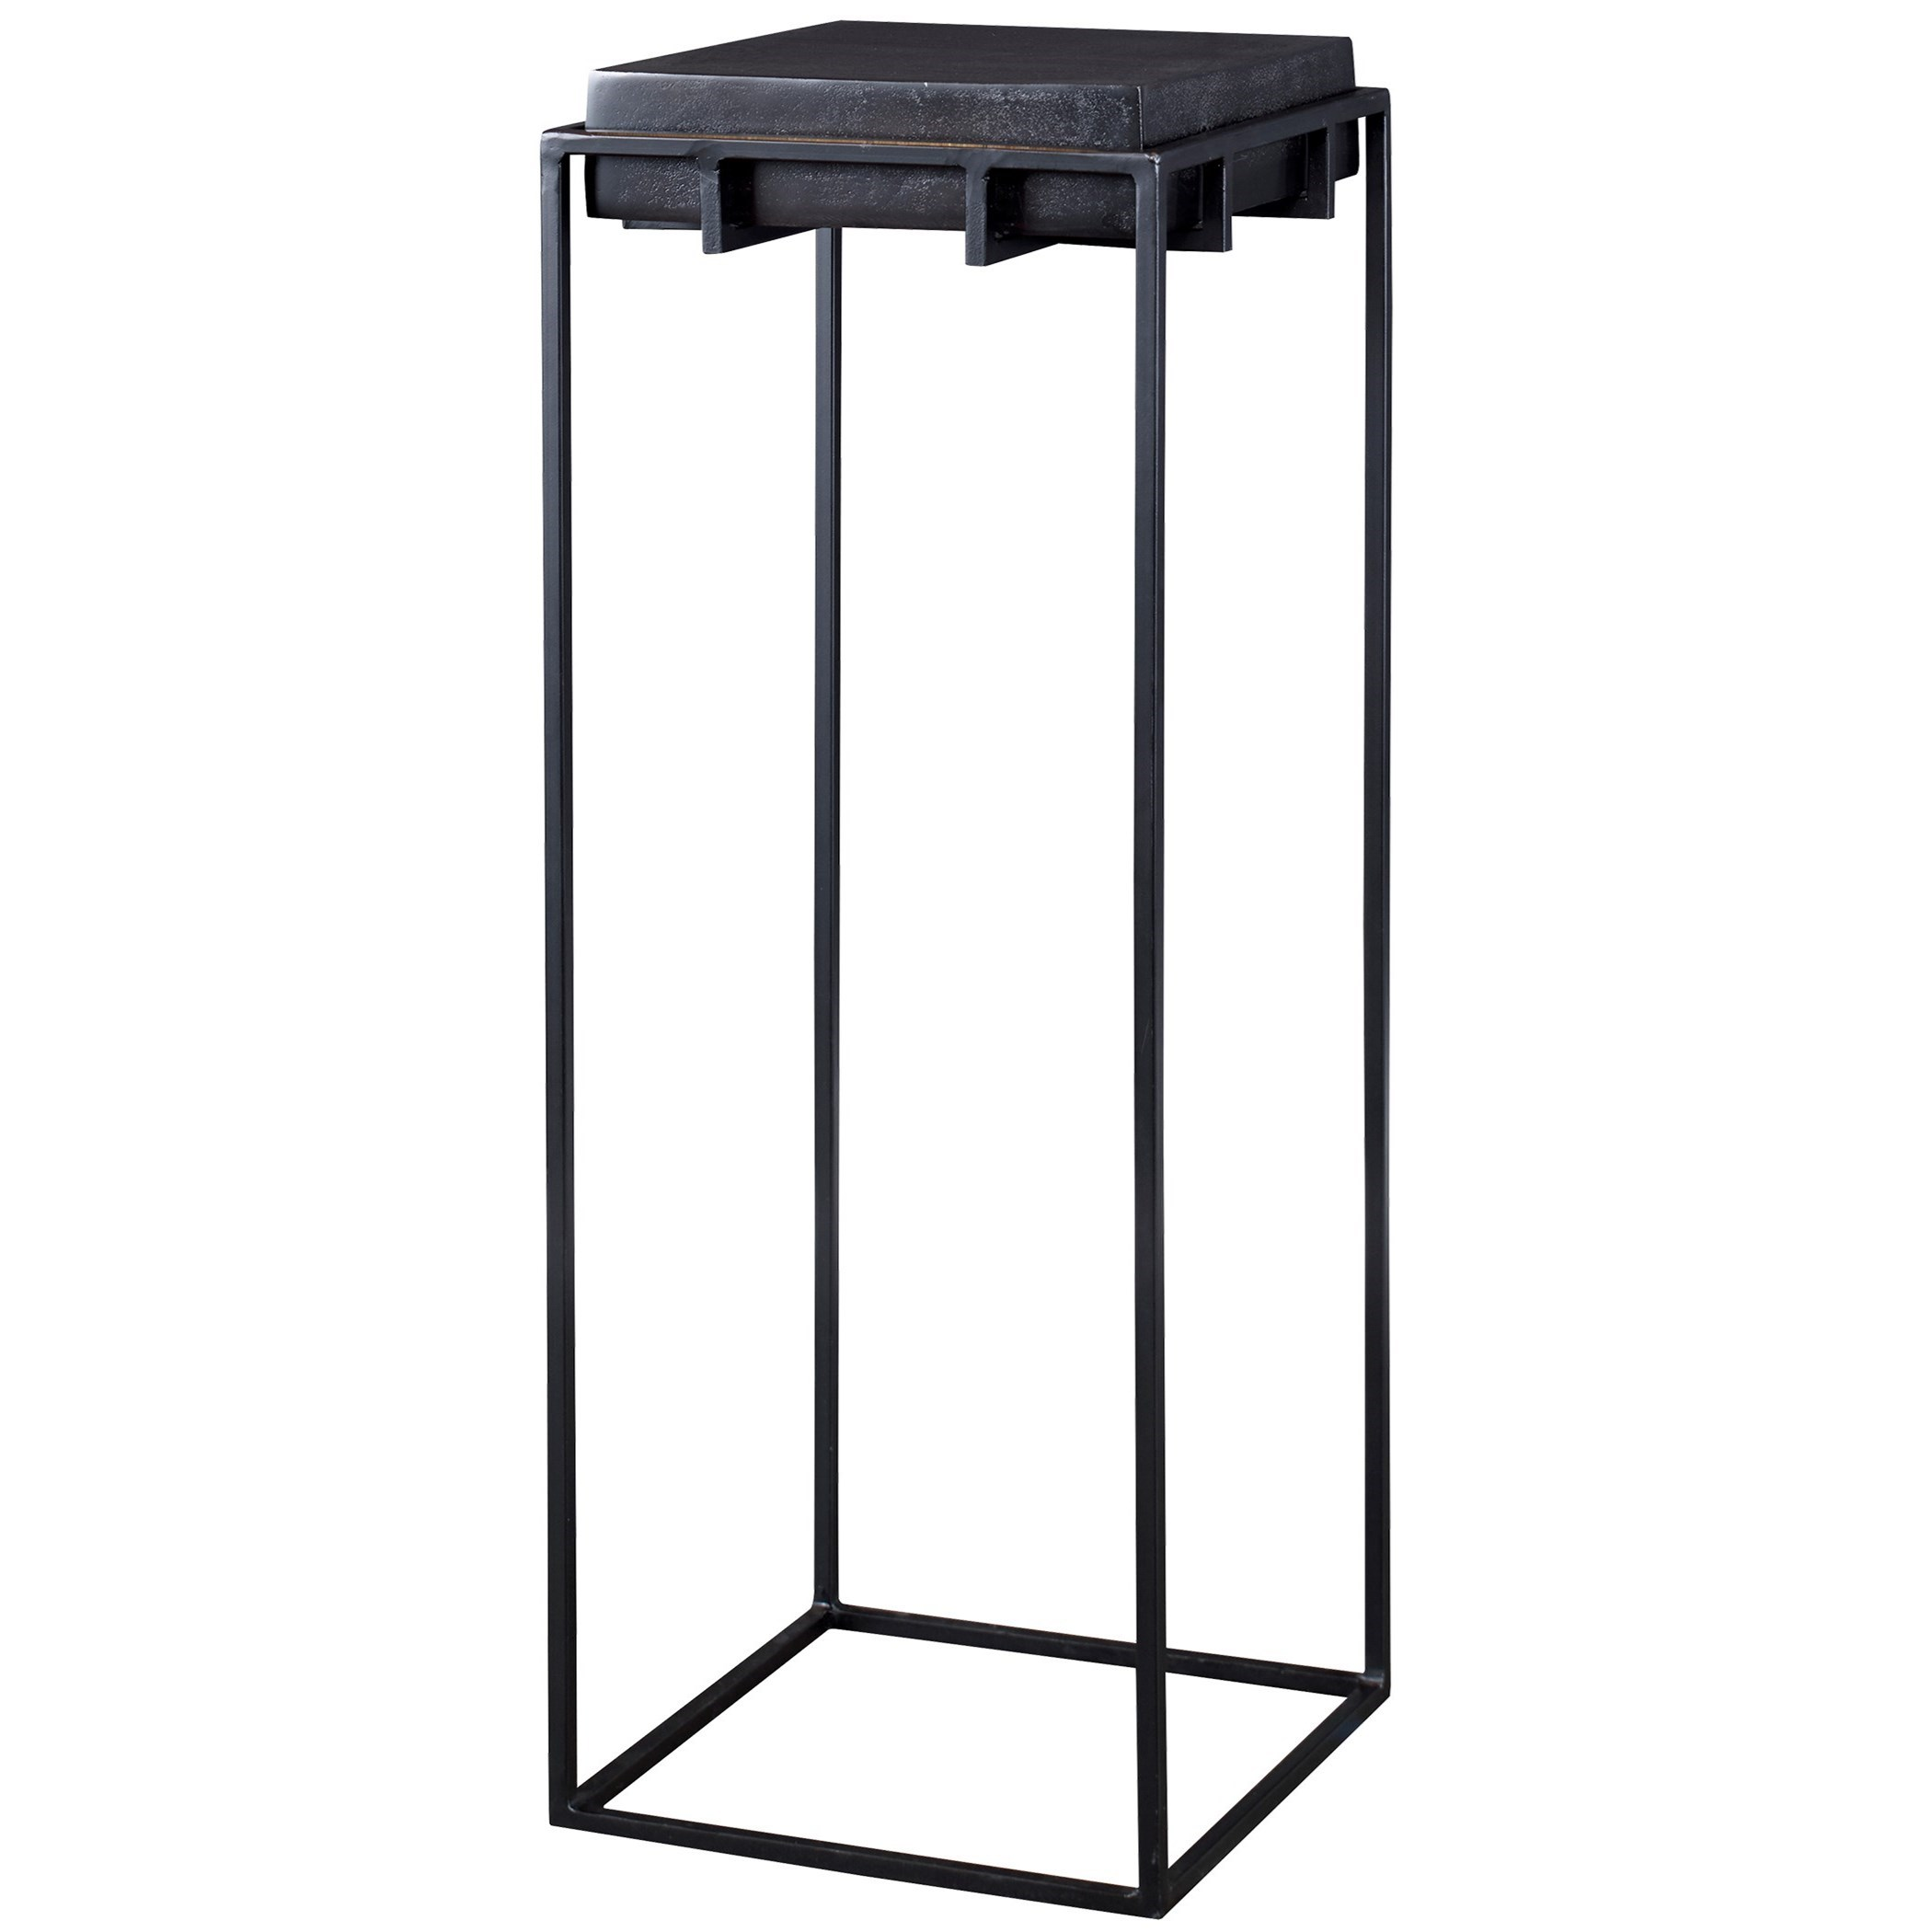 Telone Black Large Pedestal